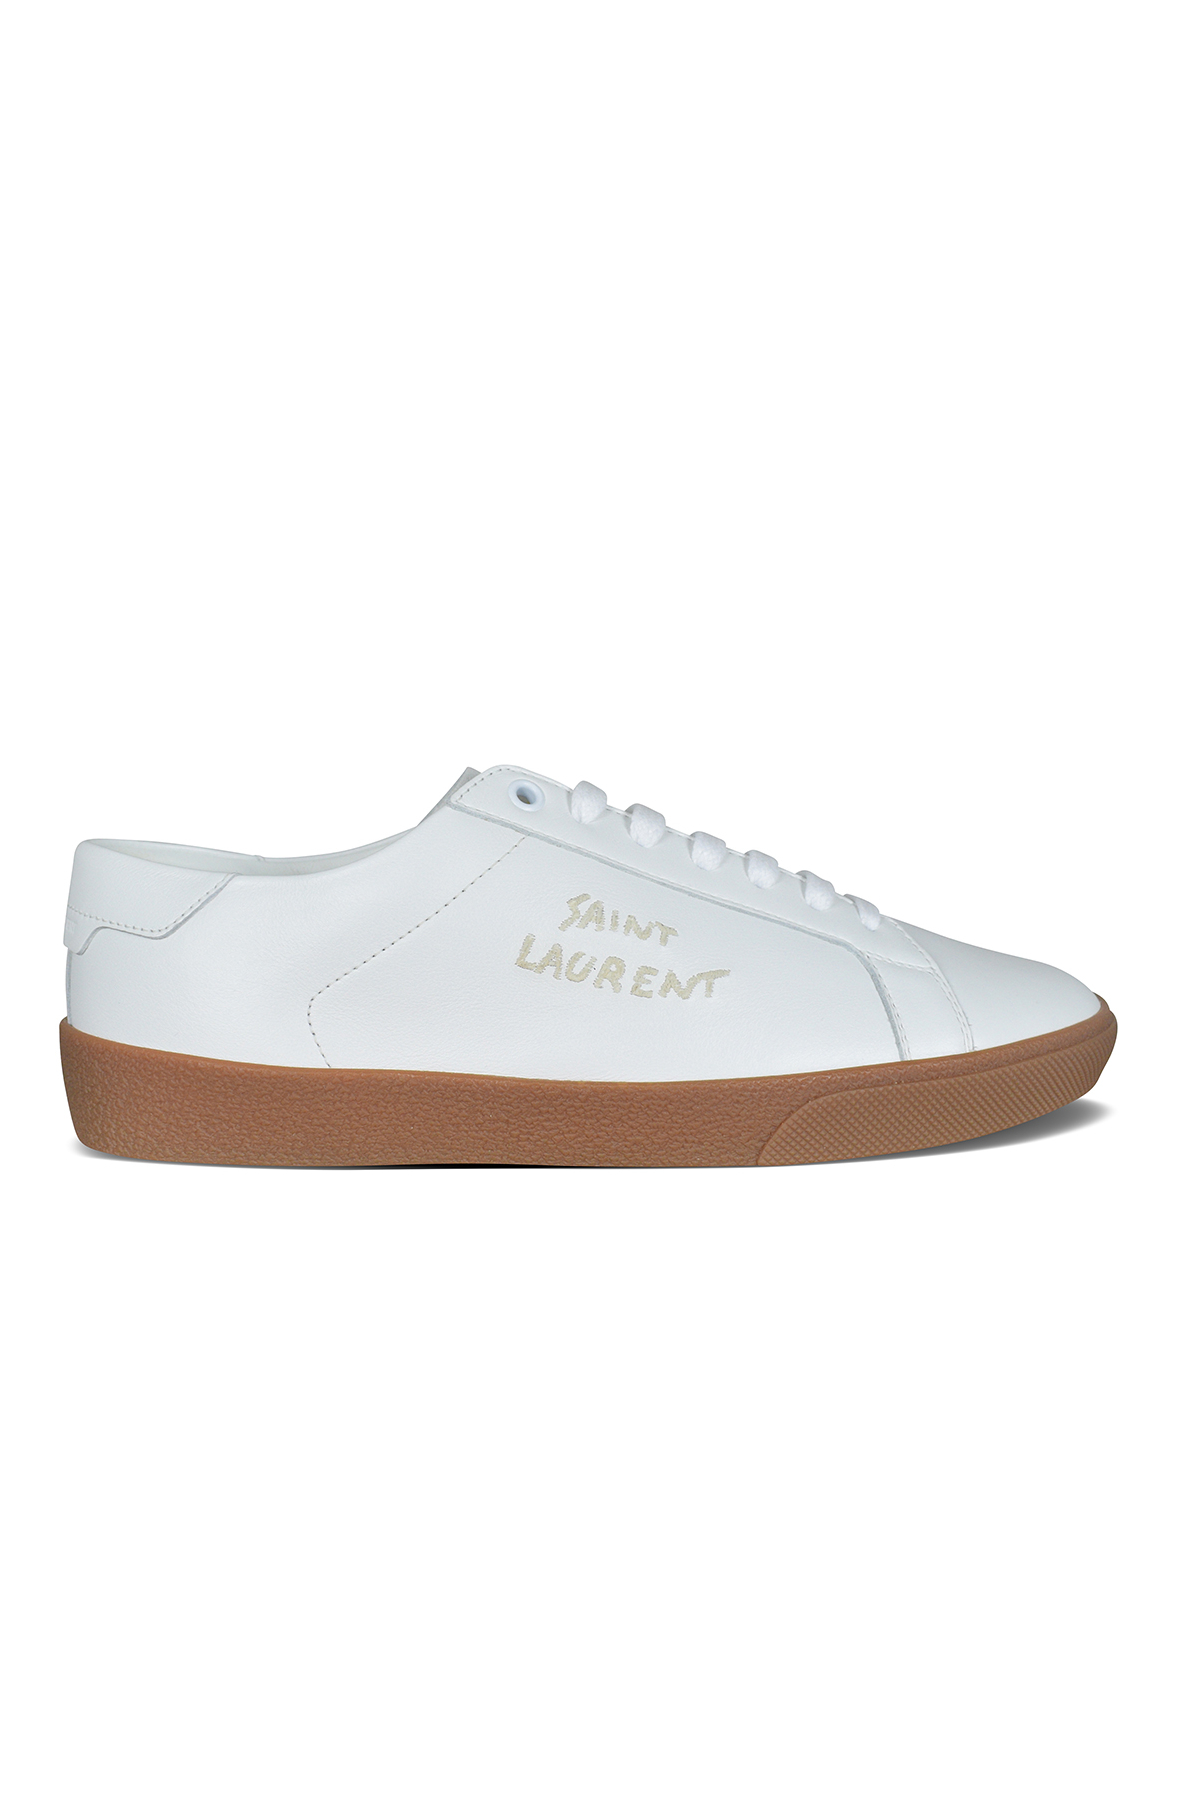 Saint Laurent Court Classic SL/06 sneakers in white calfskin.